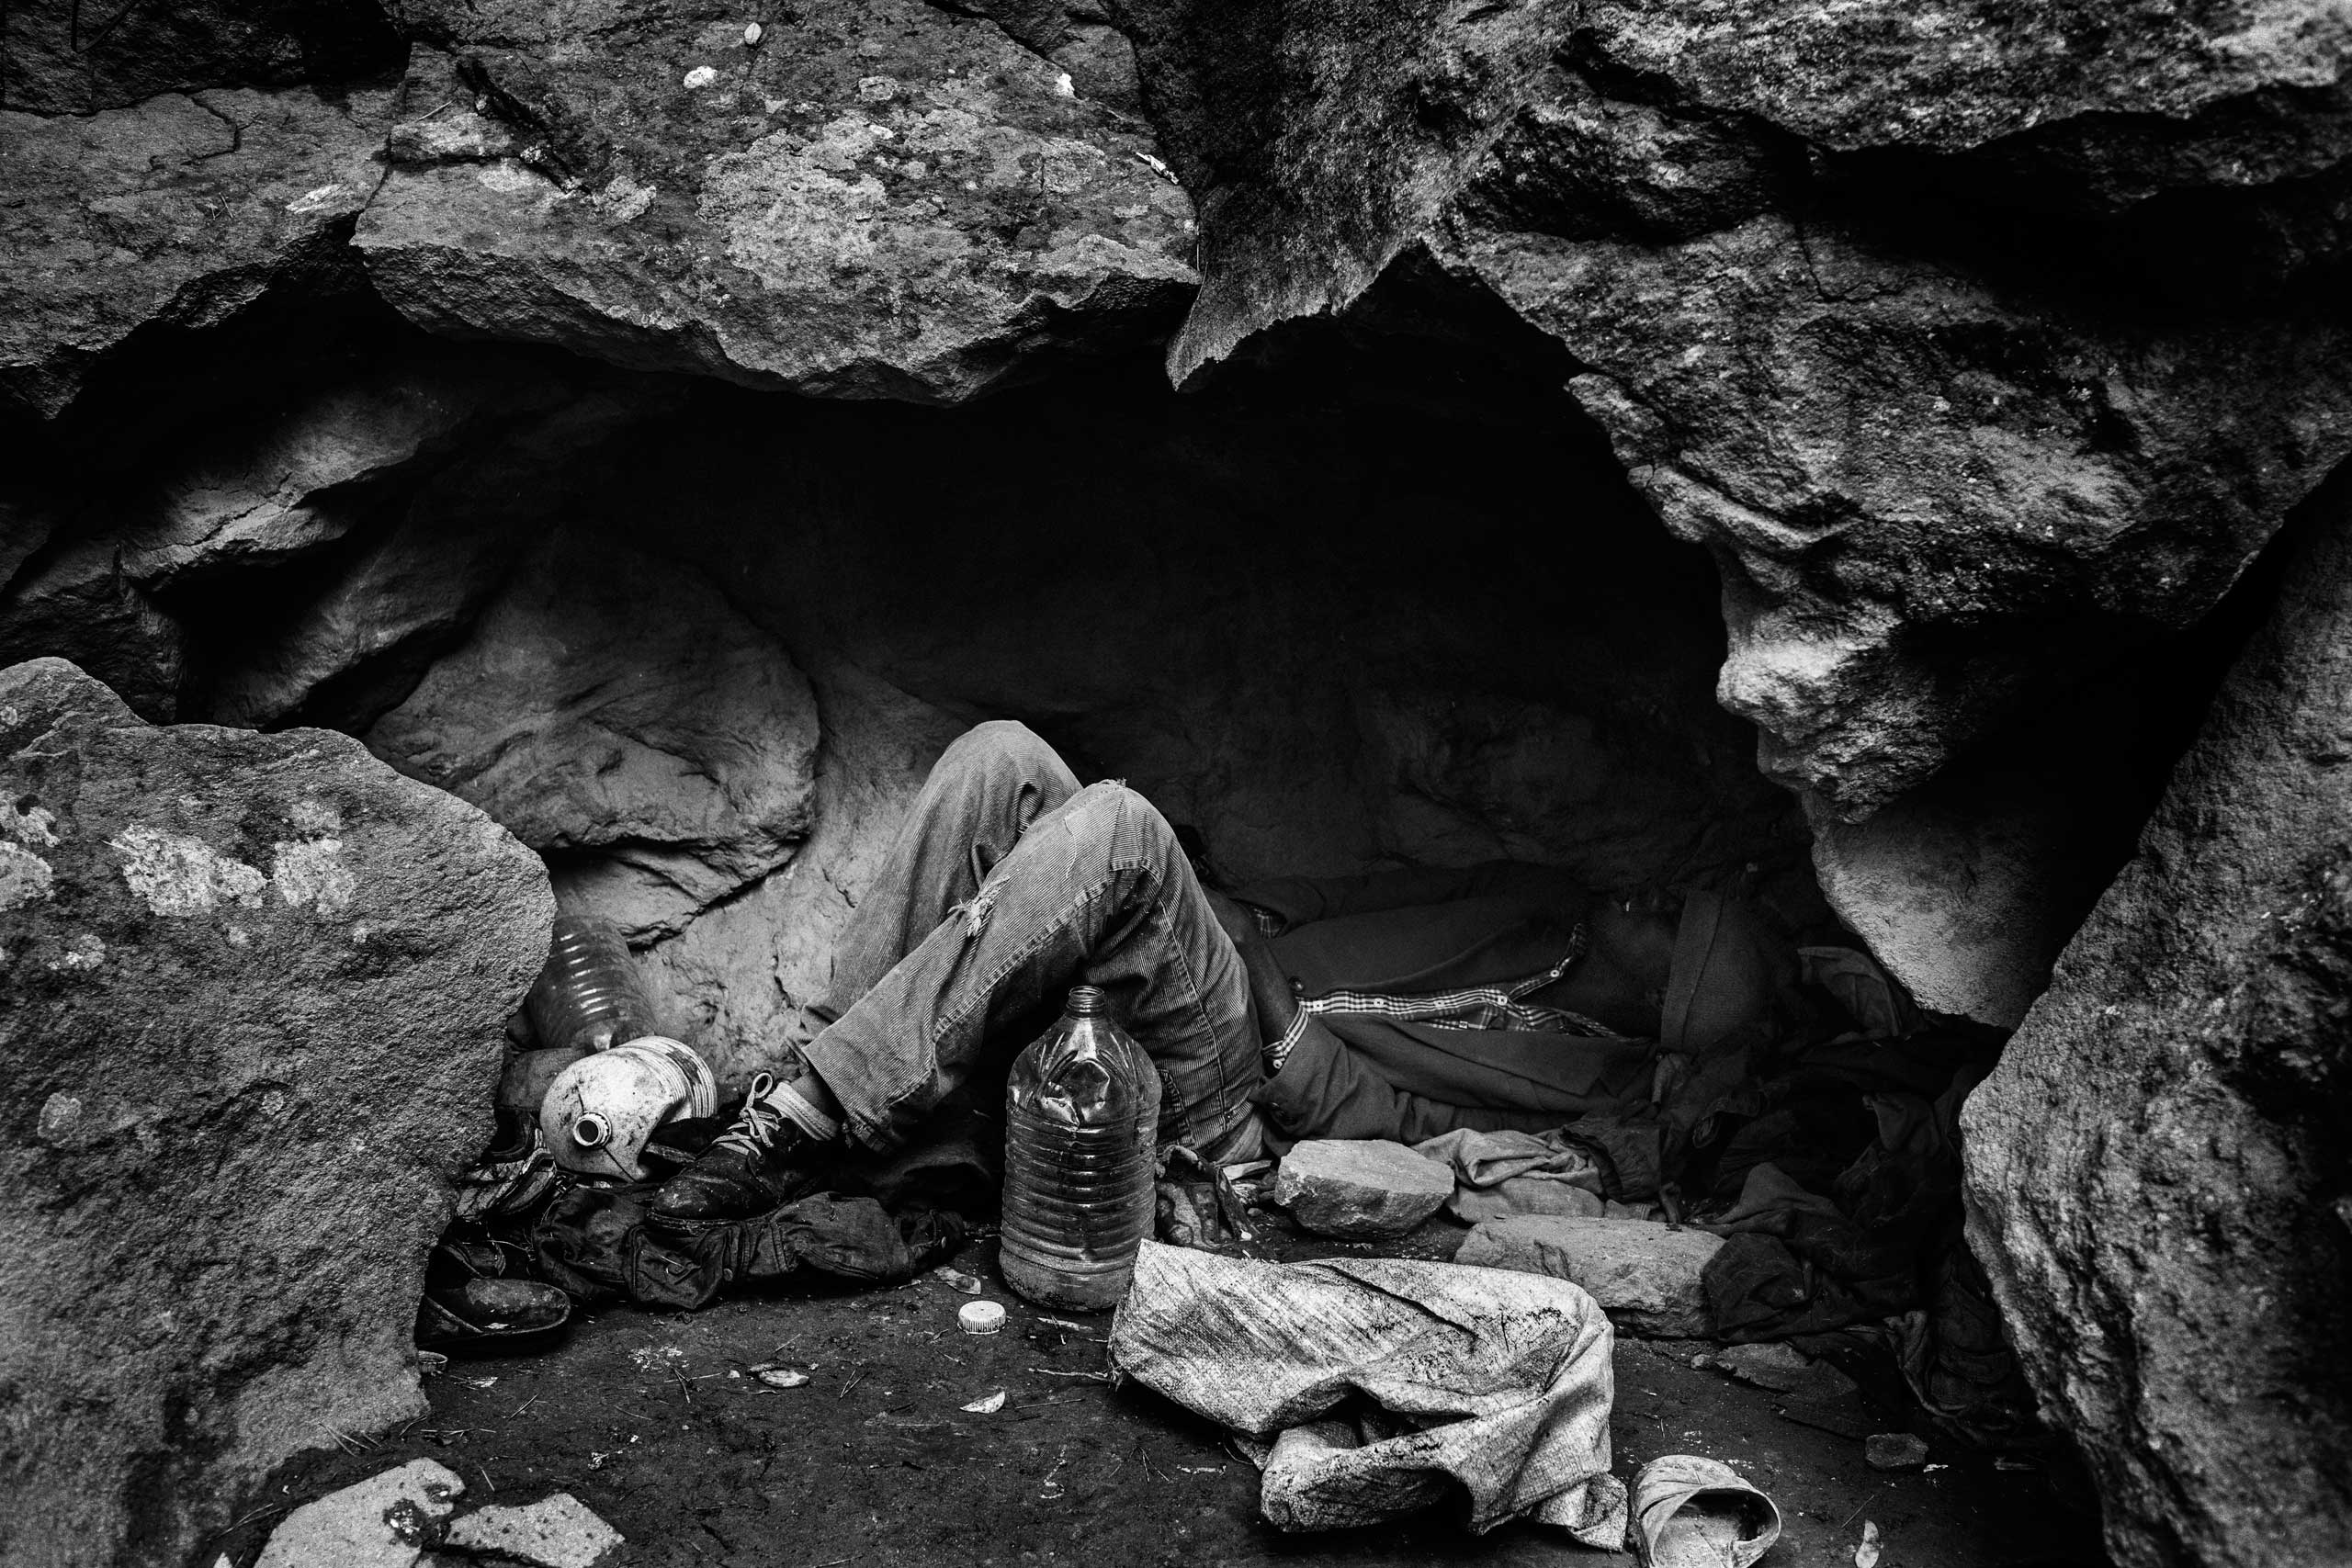 A Malian migrant lays down under a cave used as a shelter in Nador, Morocco in 2012.